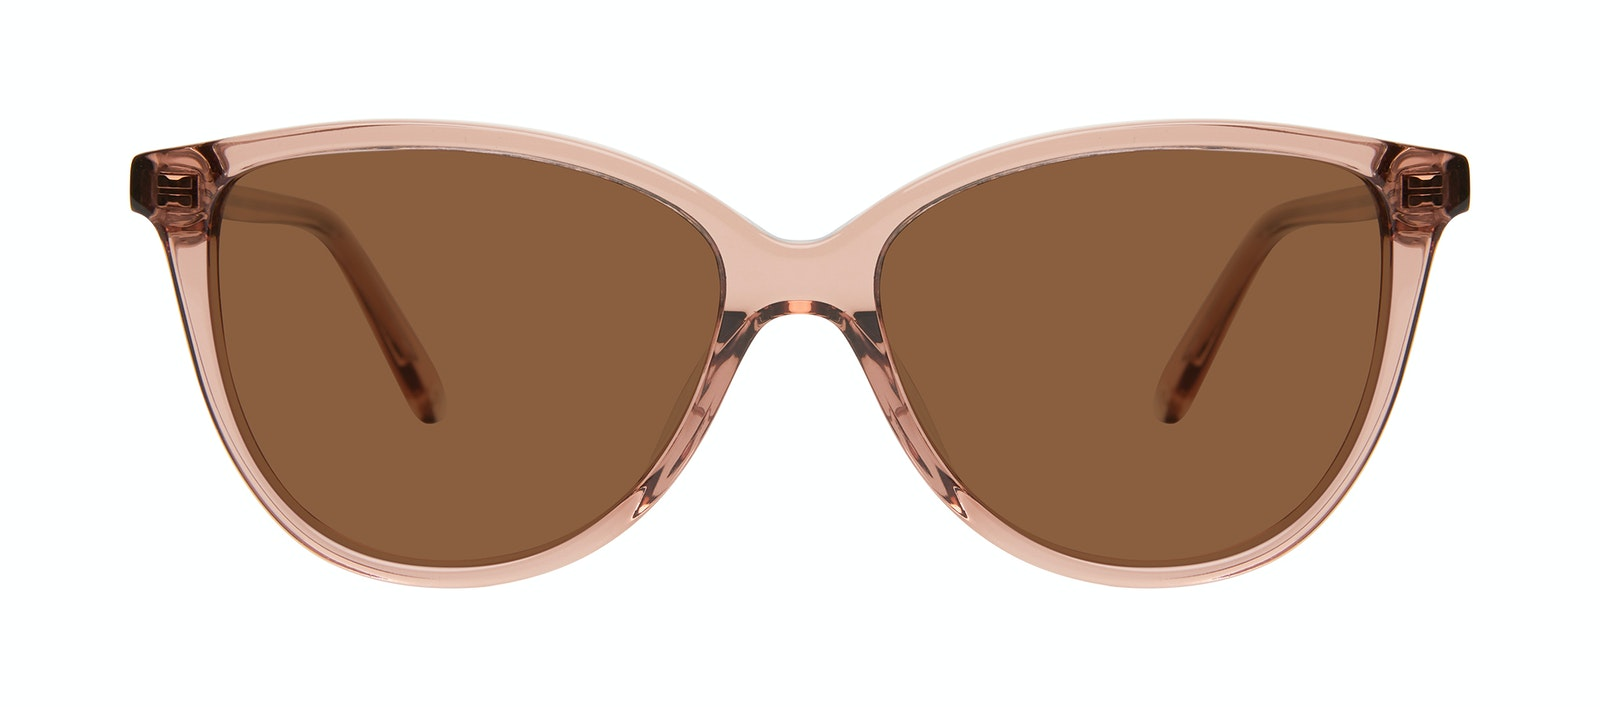 Affordable Fashion Glasses Cat Eye Sunglasses Women Tailor Rose Front